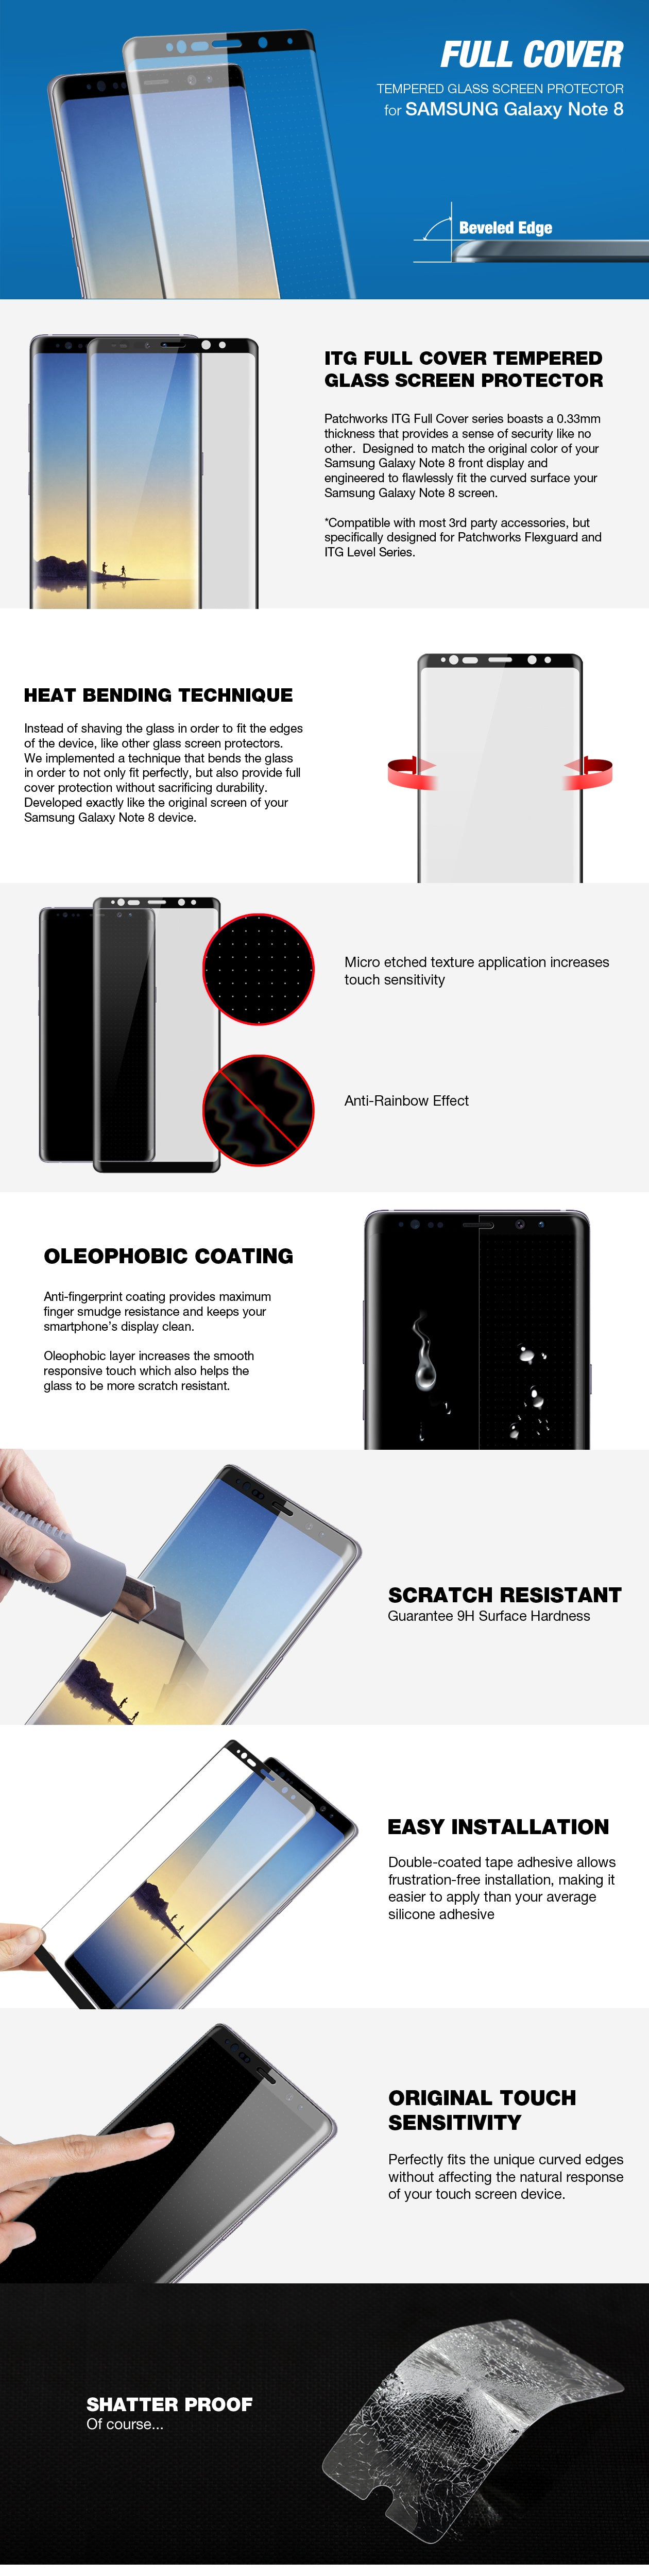 Patchworks Full Cover glass screen protector for Galaxy Note 8